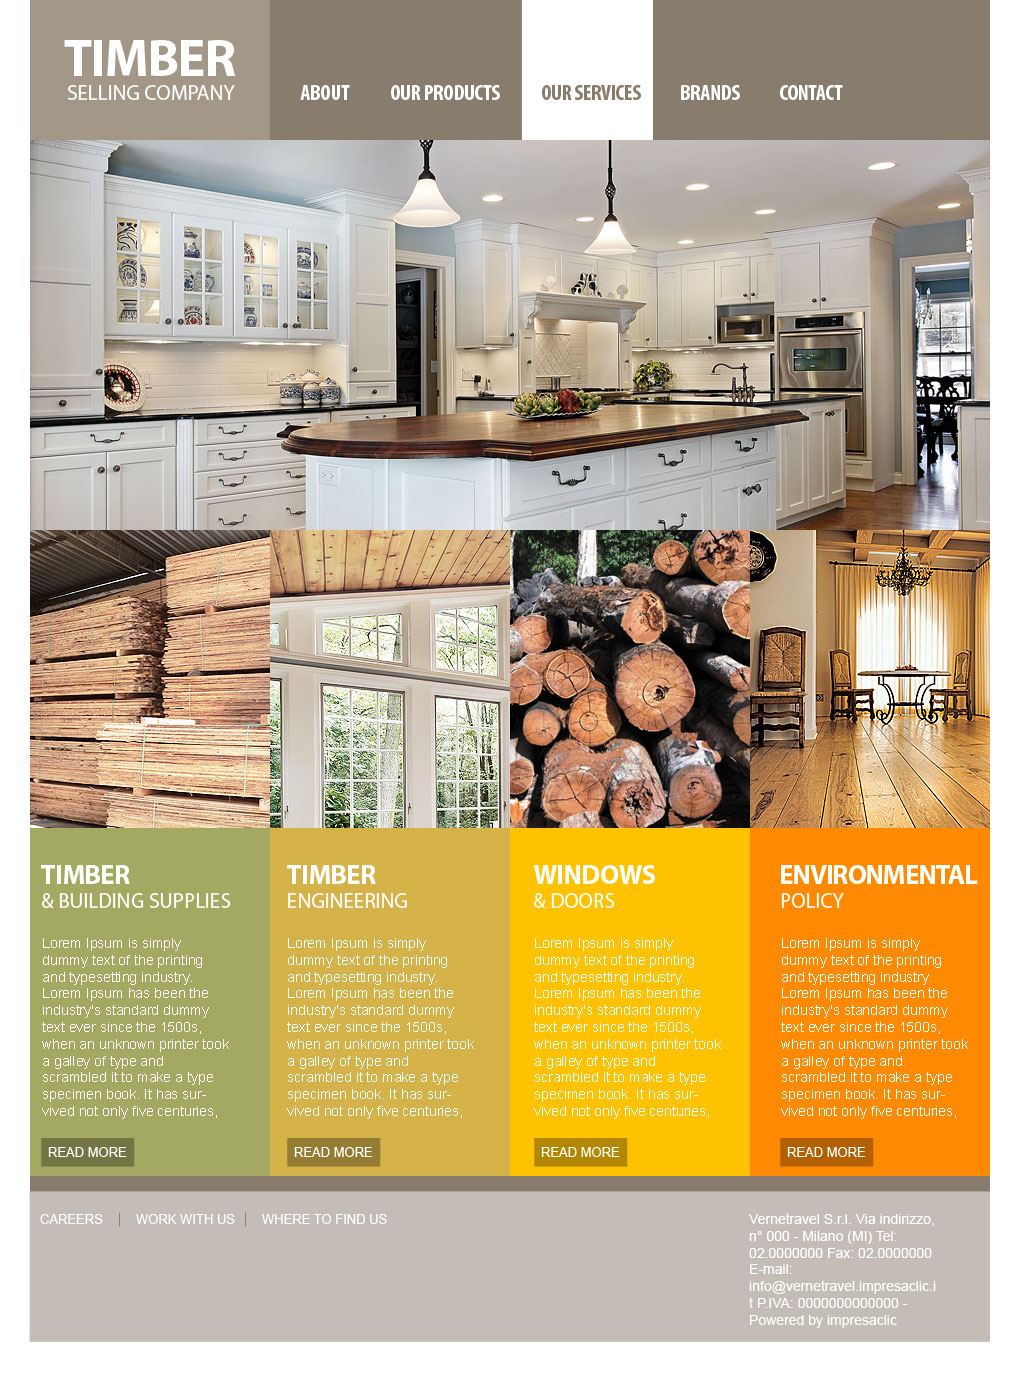 Local timber web site by mangion